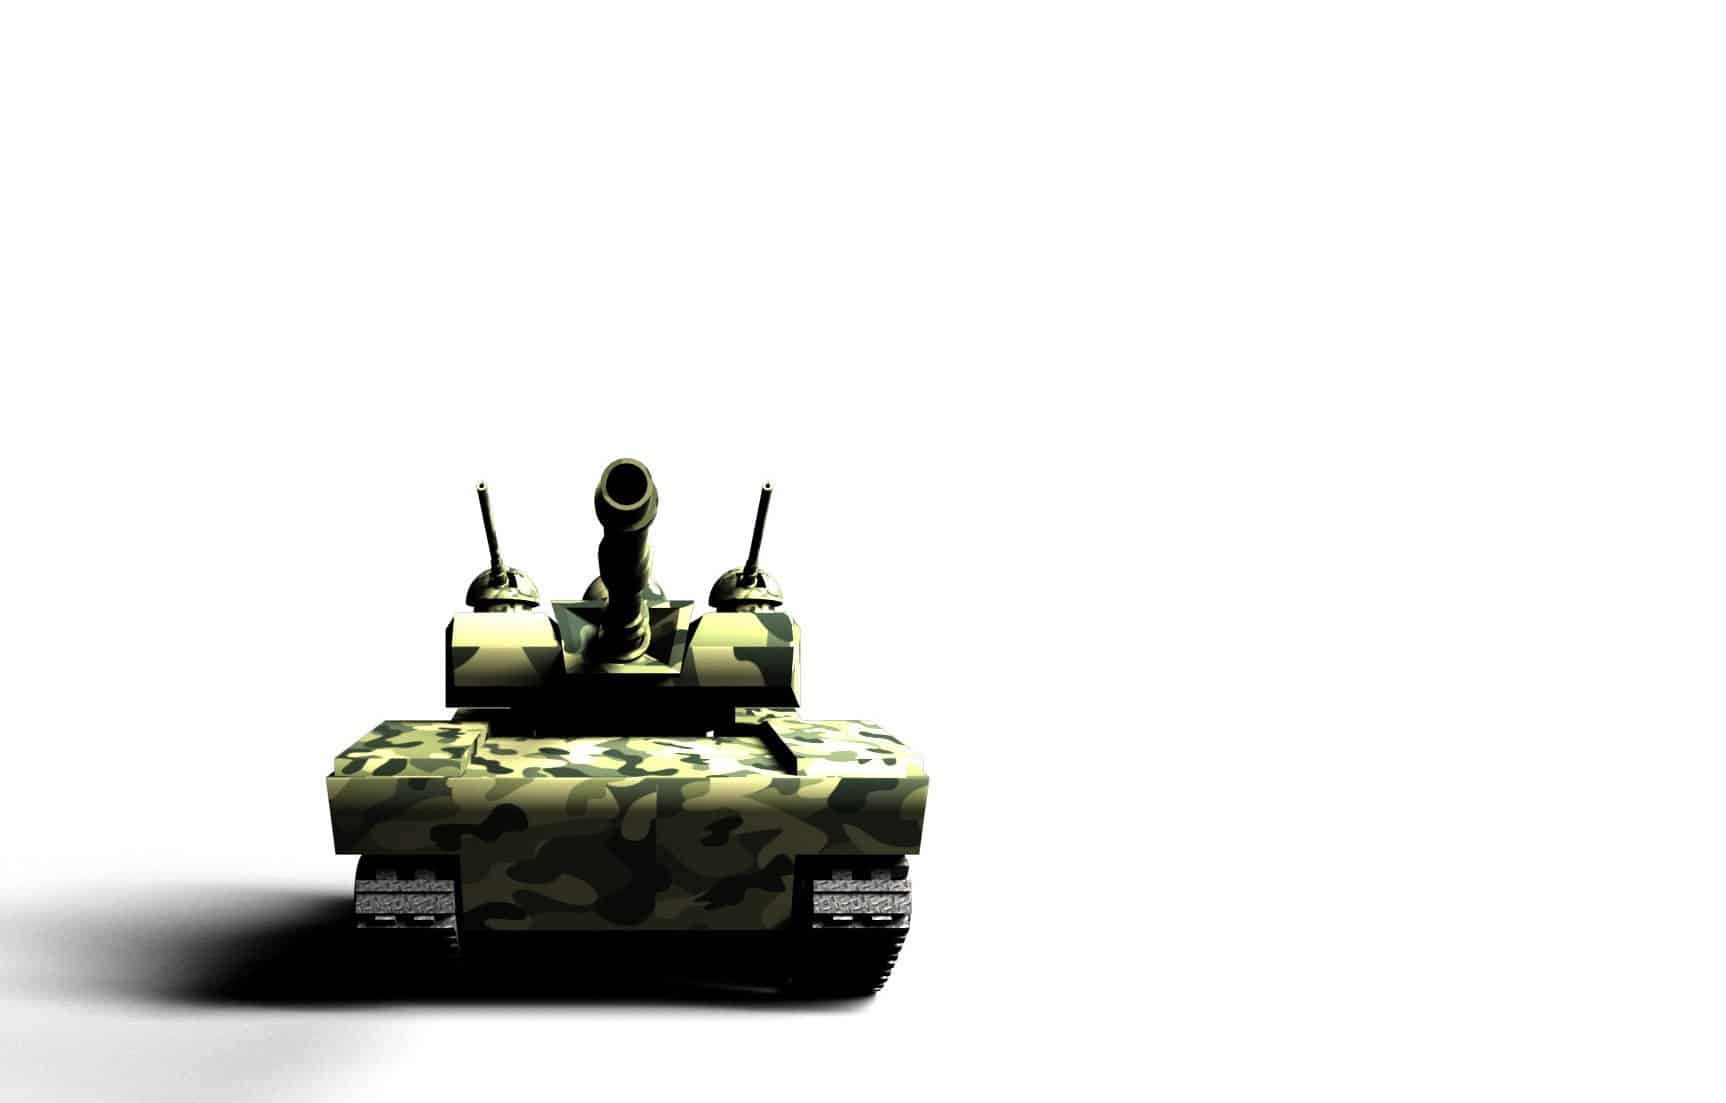 This is a picture of a Frontal 3D render of a green military tank with camouflage texture on white background. for an article by Octopus Intelligence. We isolate your problems, reduce risk and uncertainty and deliver intelligence-led answers and innovative solutions. Dedicated to help you win.